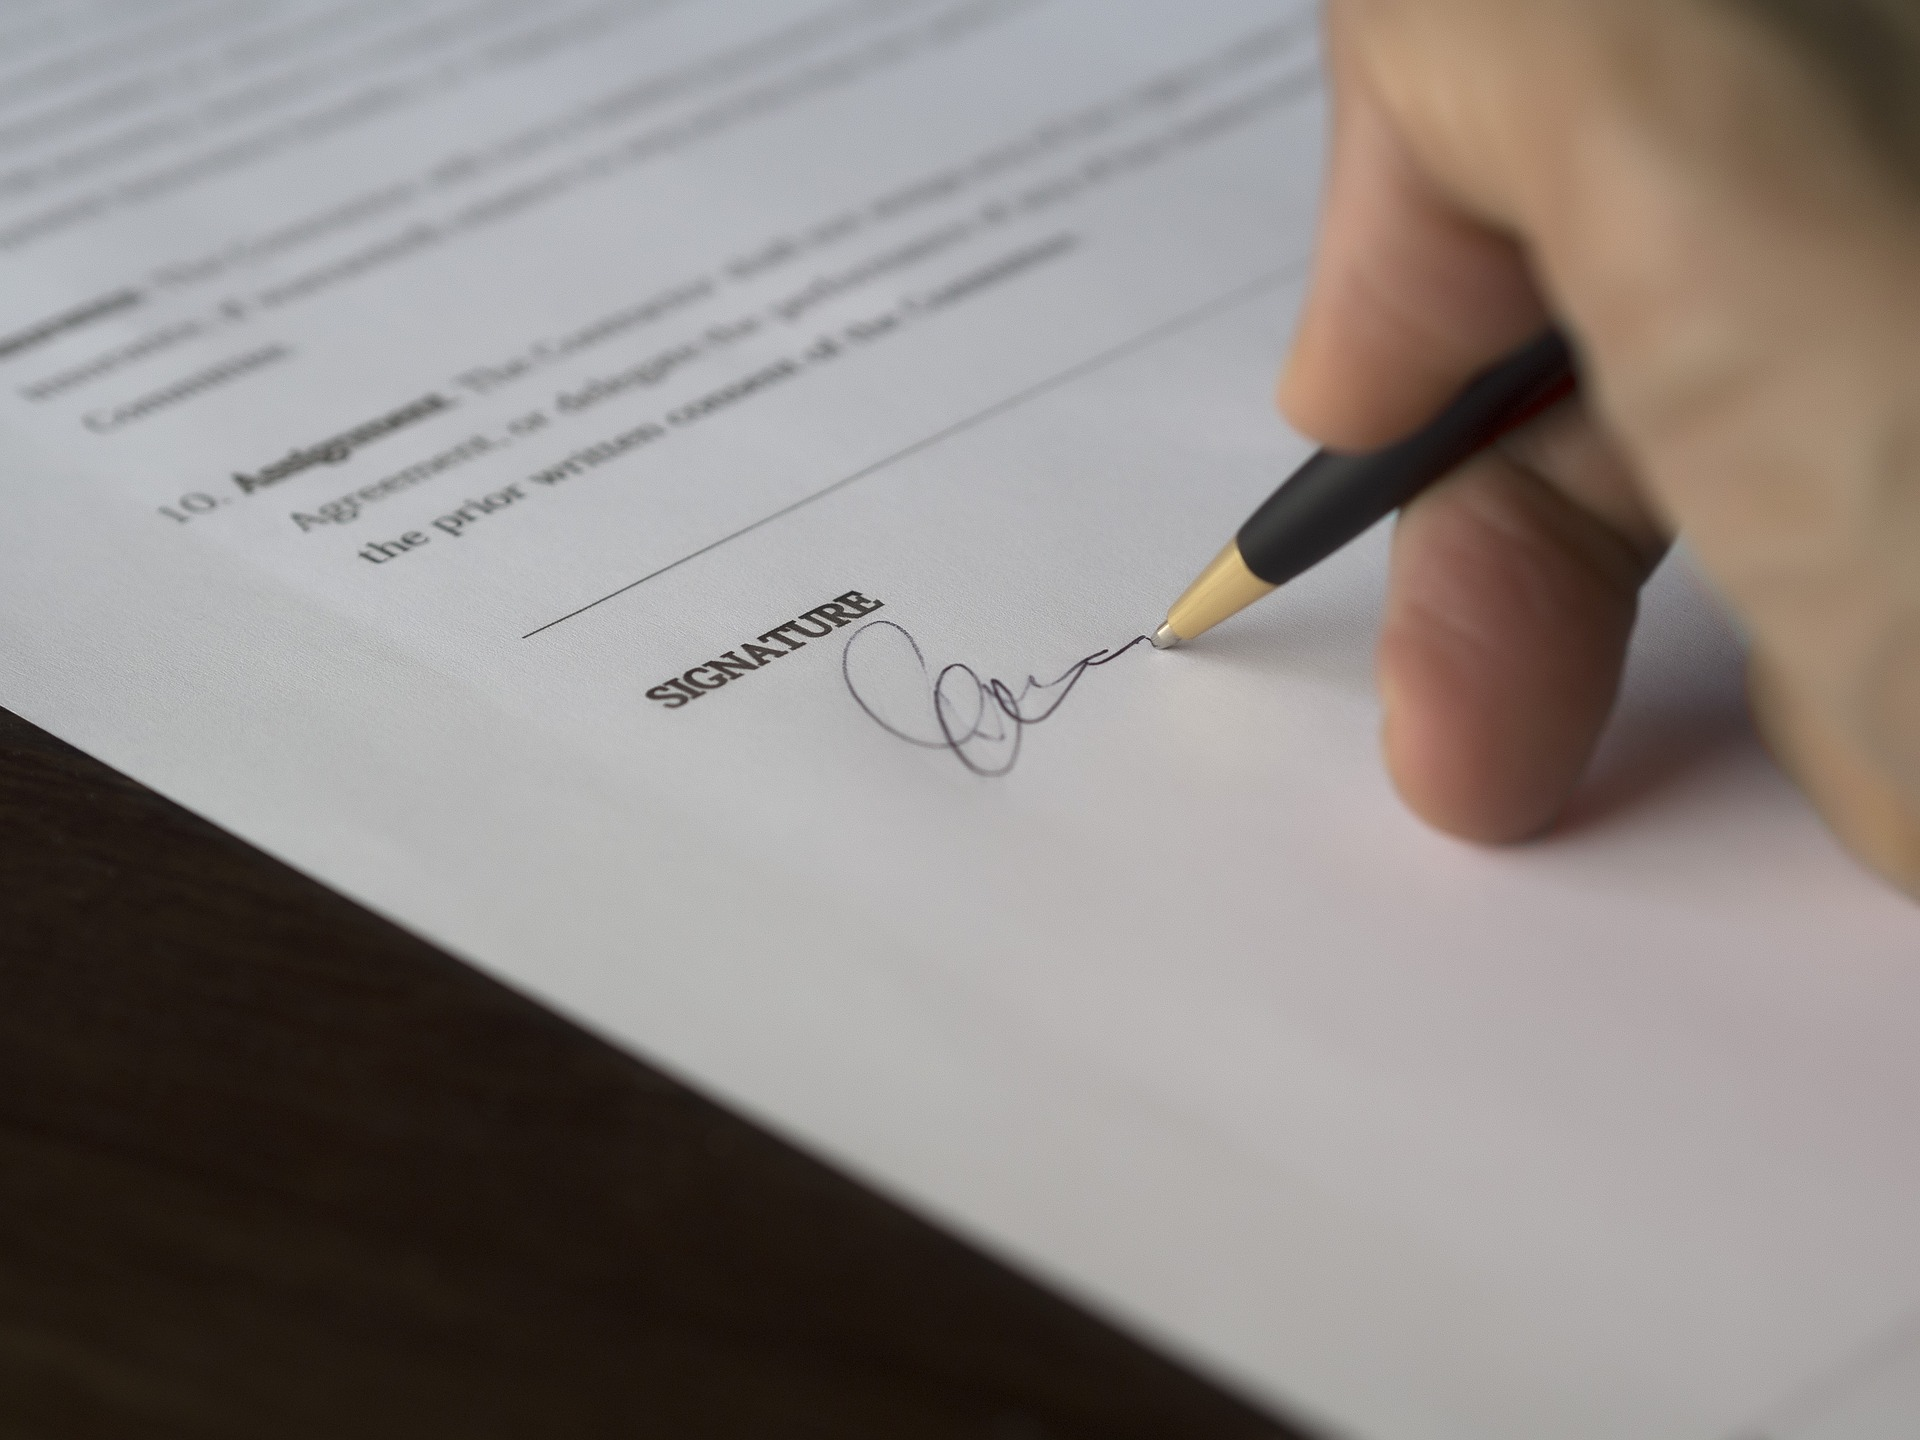 What are the elements of a contract?